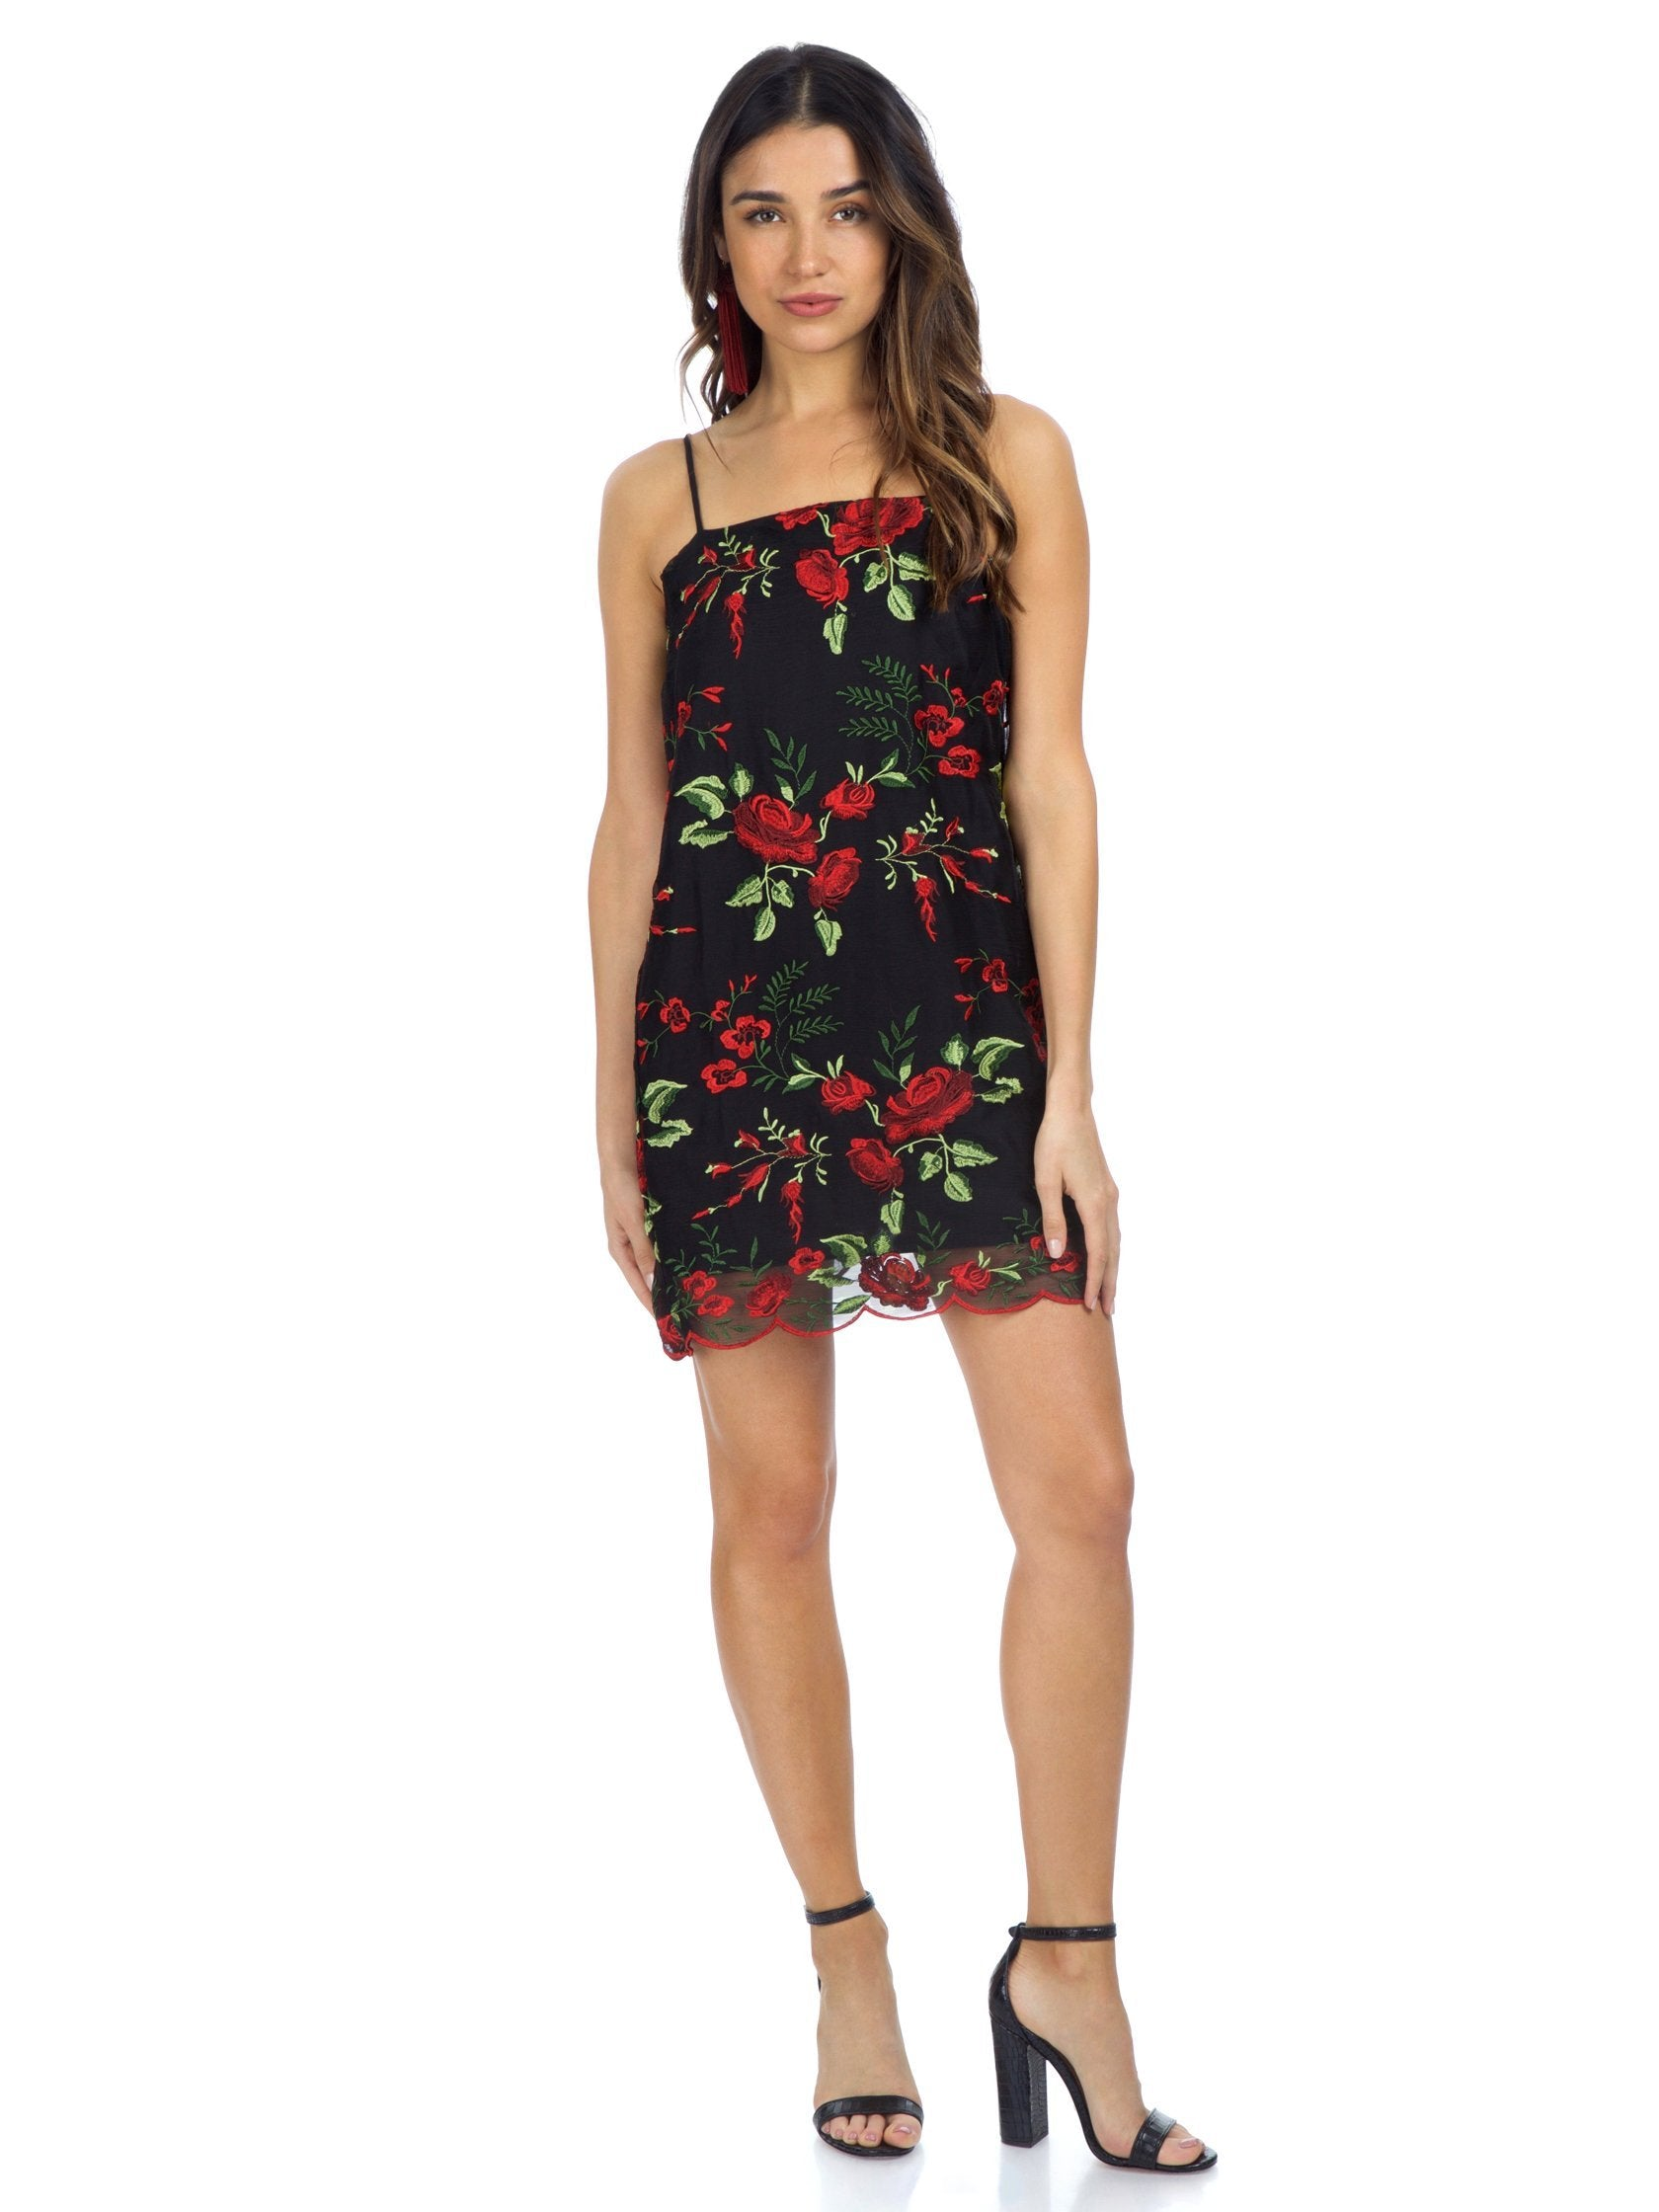 64b425f7b0d Girl outfit in a dress rental from Show Me Your Mumu called Super Slip Dress